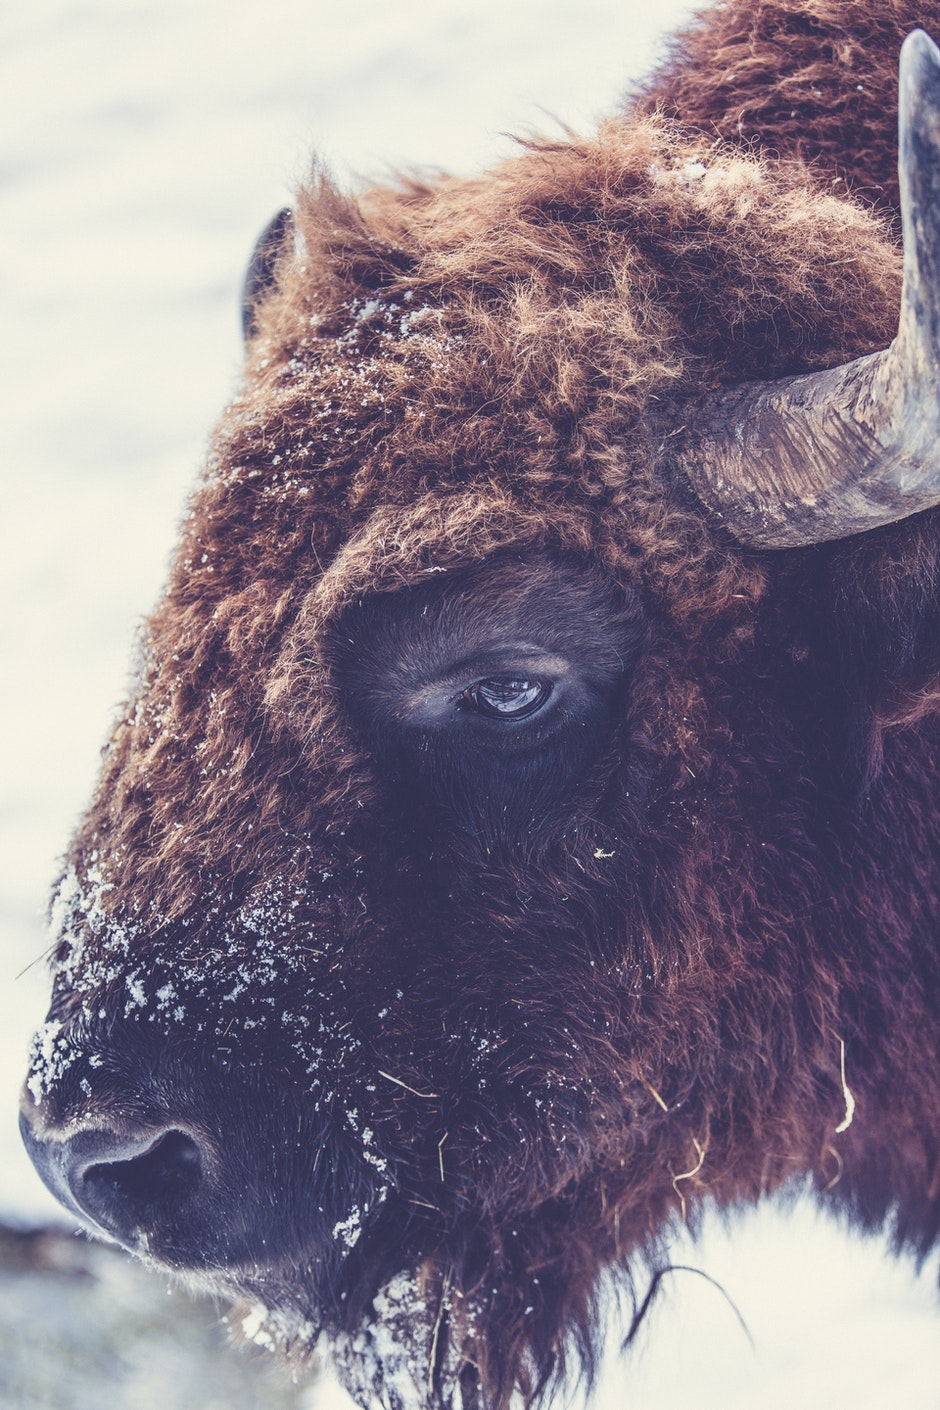 animal, animal photography, bison